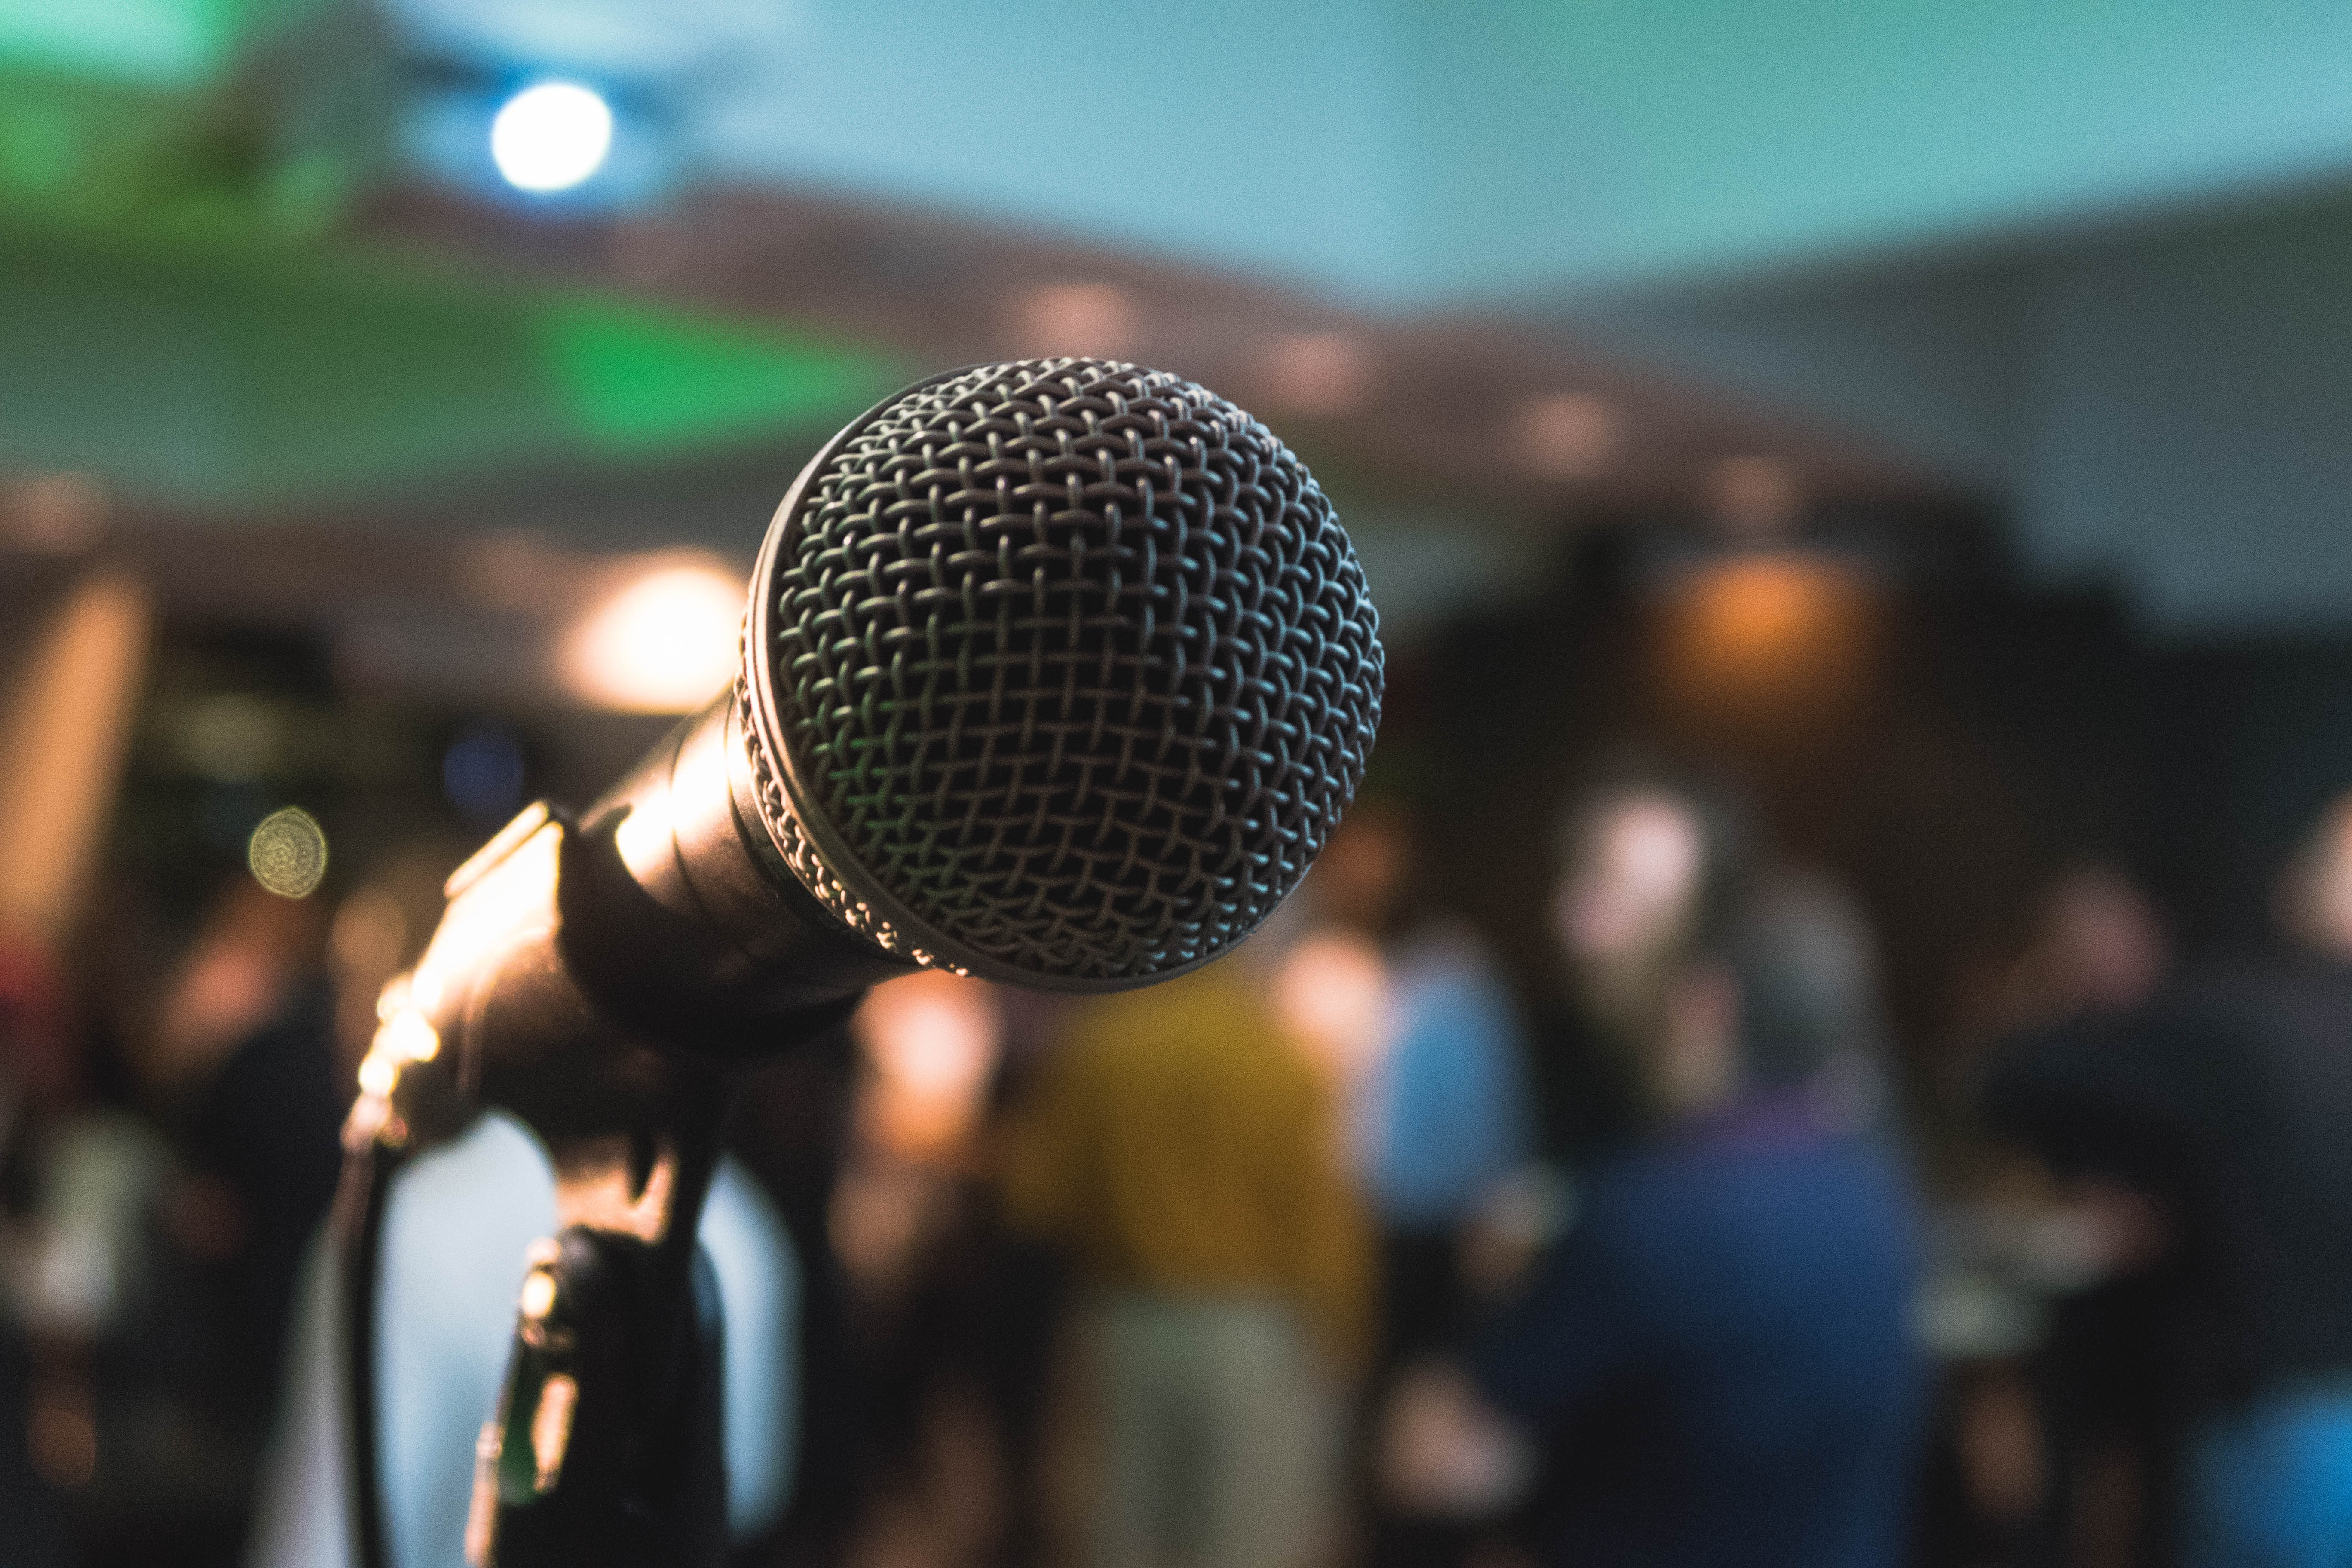 A microphone on a stand in front of a blurred-out crowd. Photo courtesy of Kane Reinholdtsen on Unsplash.